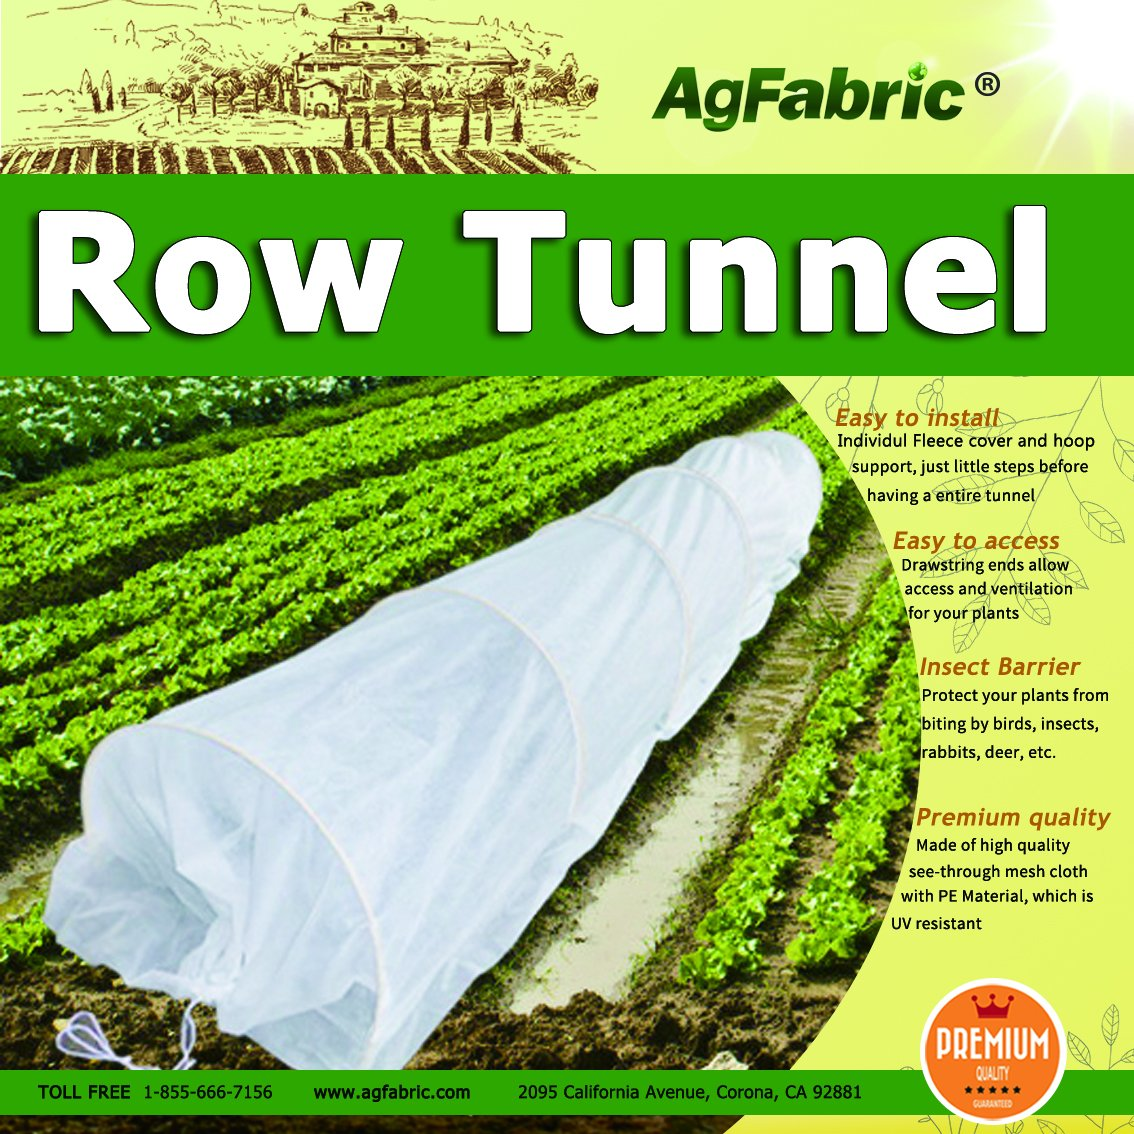 20FT Long Agfabric Grow Tunnel,Mini Greenhouse,Hoophouse,Tunnel Kits, 0 9oz  Row Cover and Tunnel Hoops,Plant Cover &Frost Blanket for Season Extension